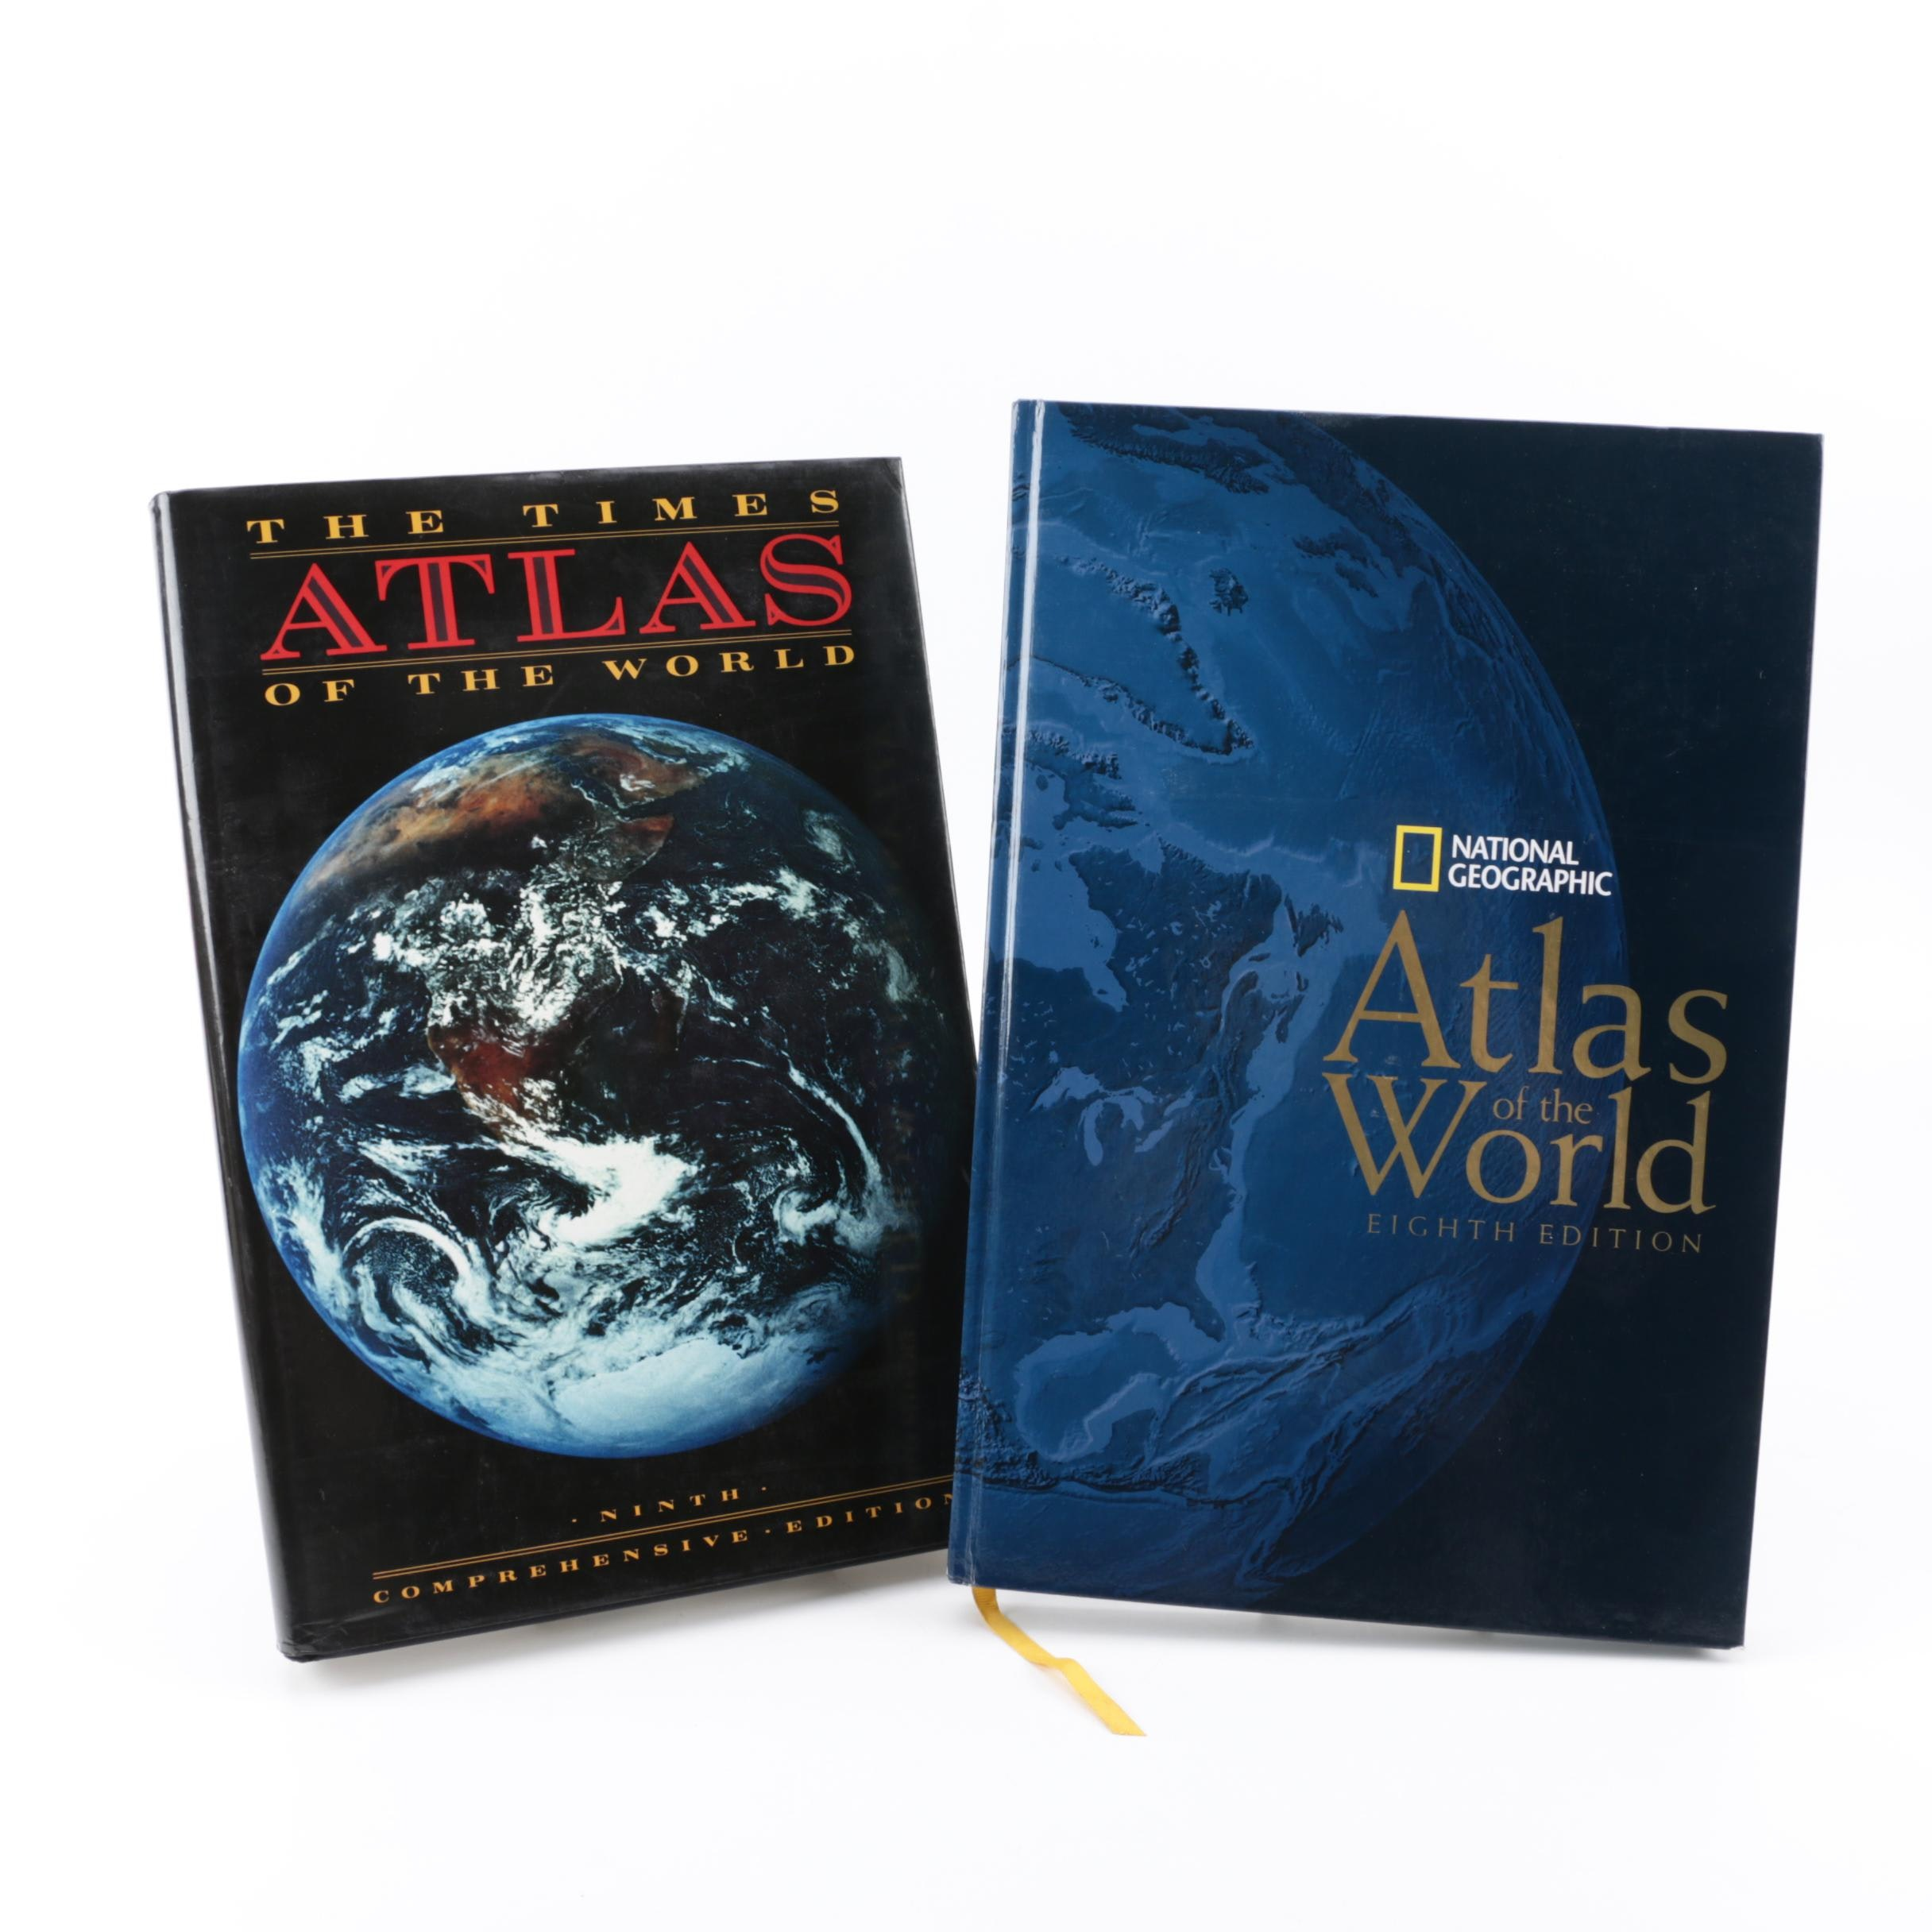 1990s and 2000s World Atlases including Times and National Geographic